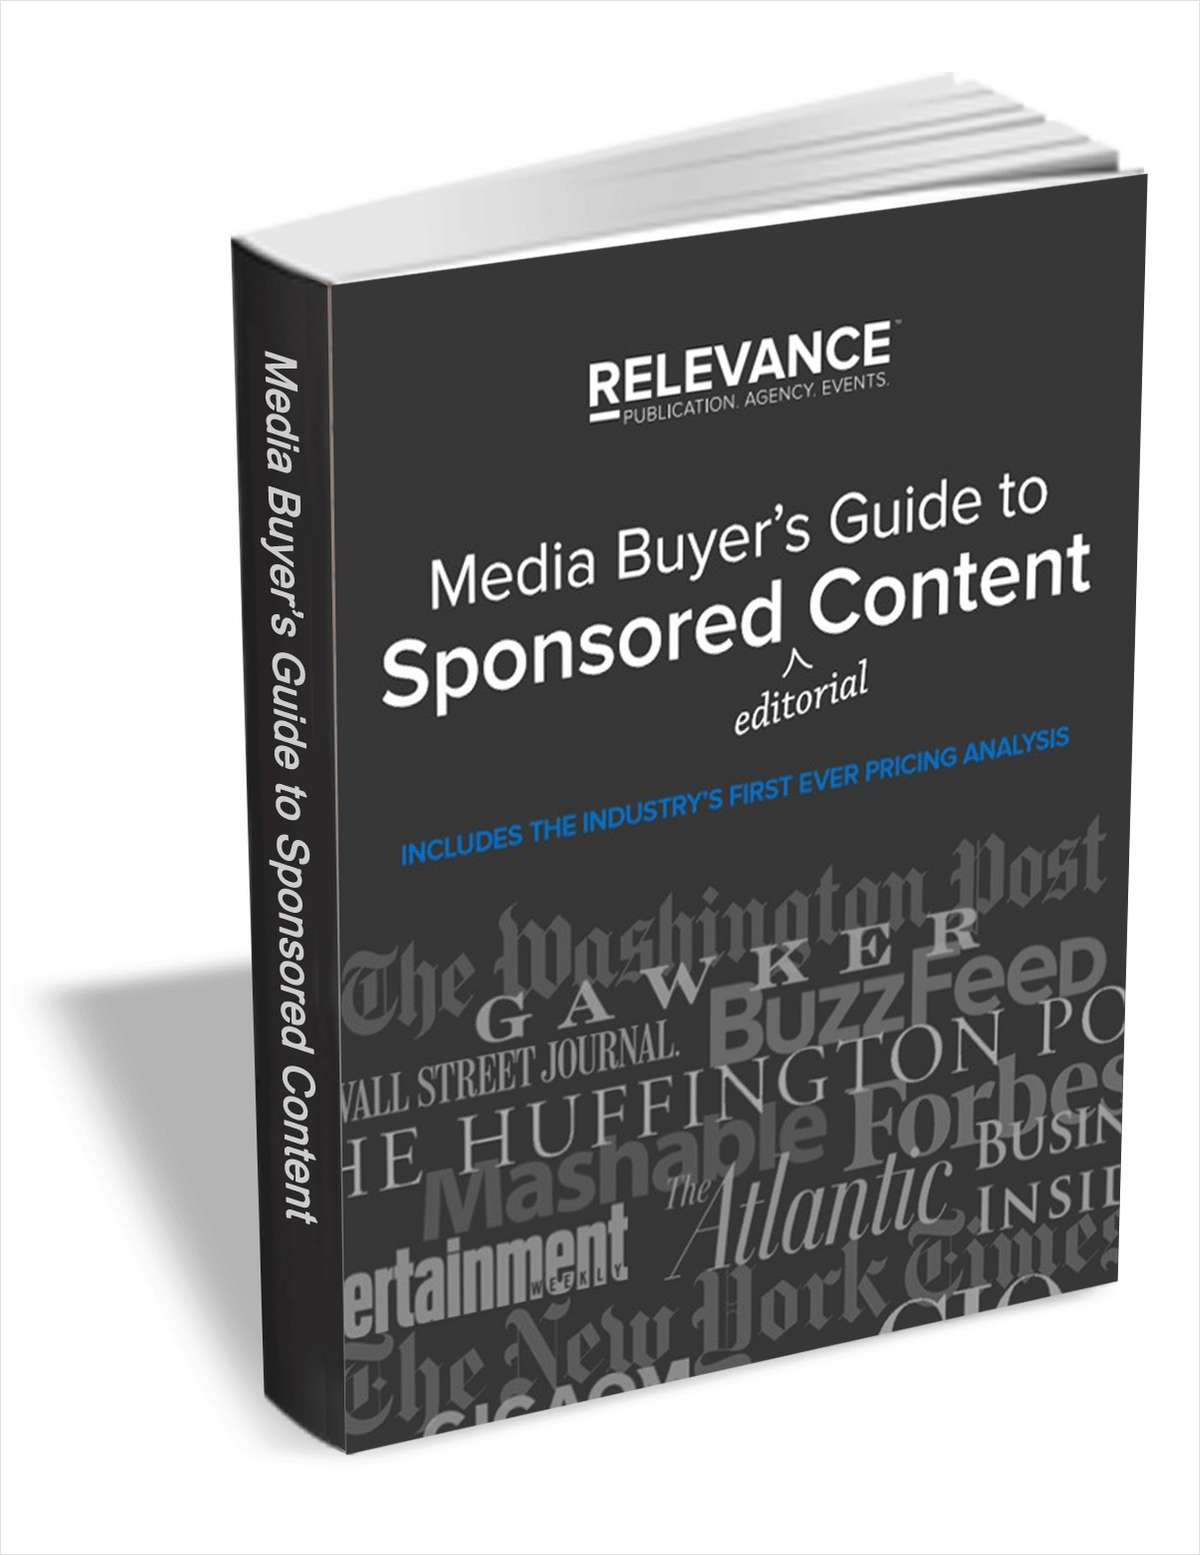 The Media Buyer's Guide to Sponsored Content